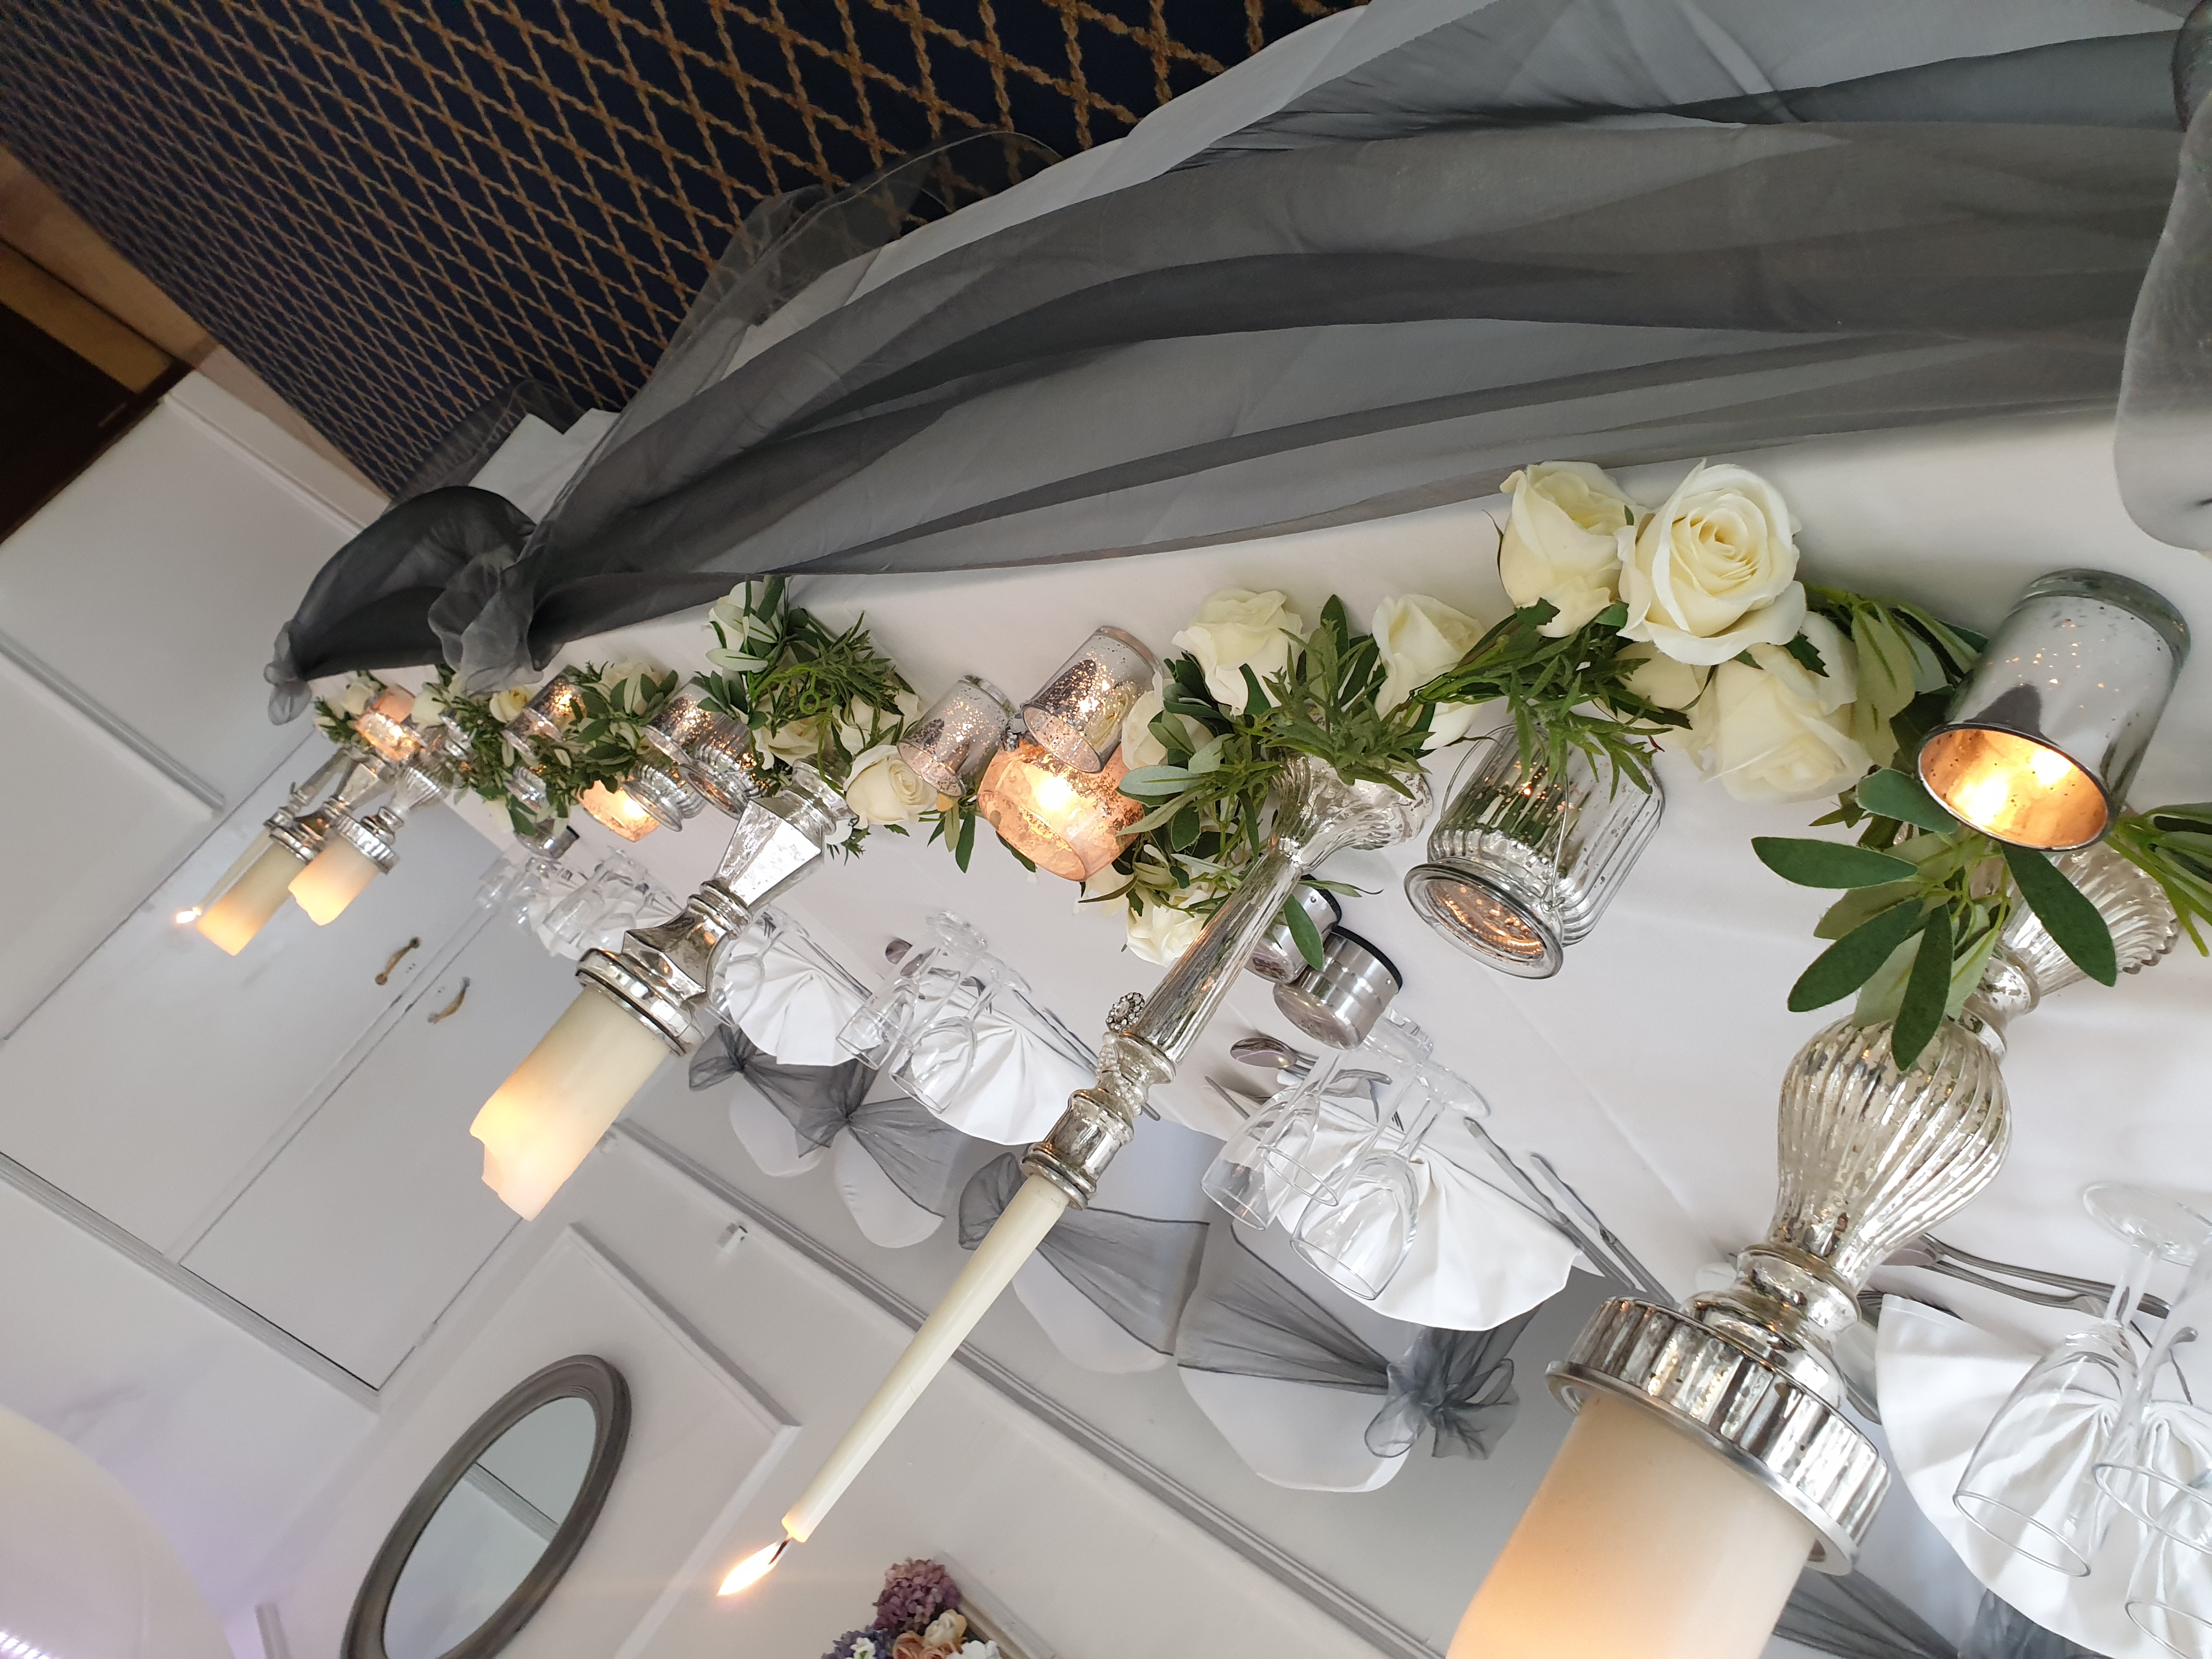 Silver mercury glass with garlands